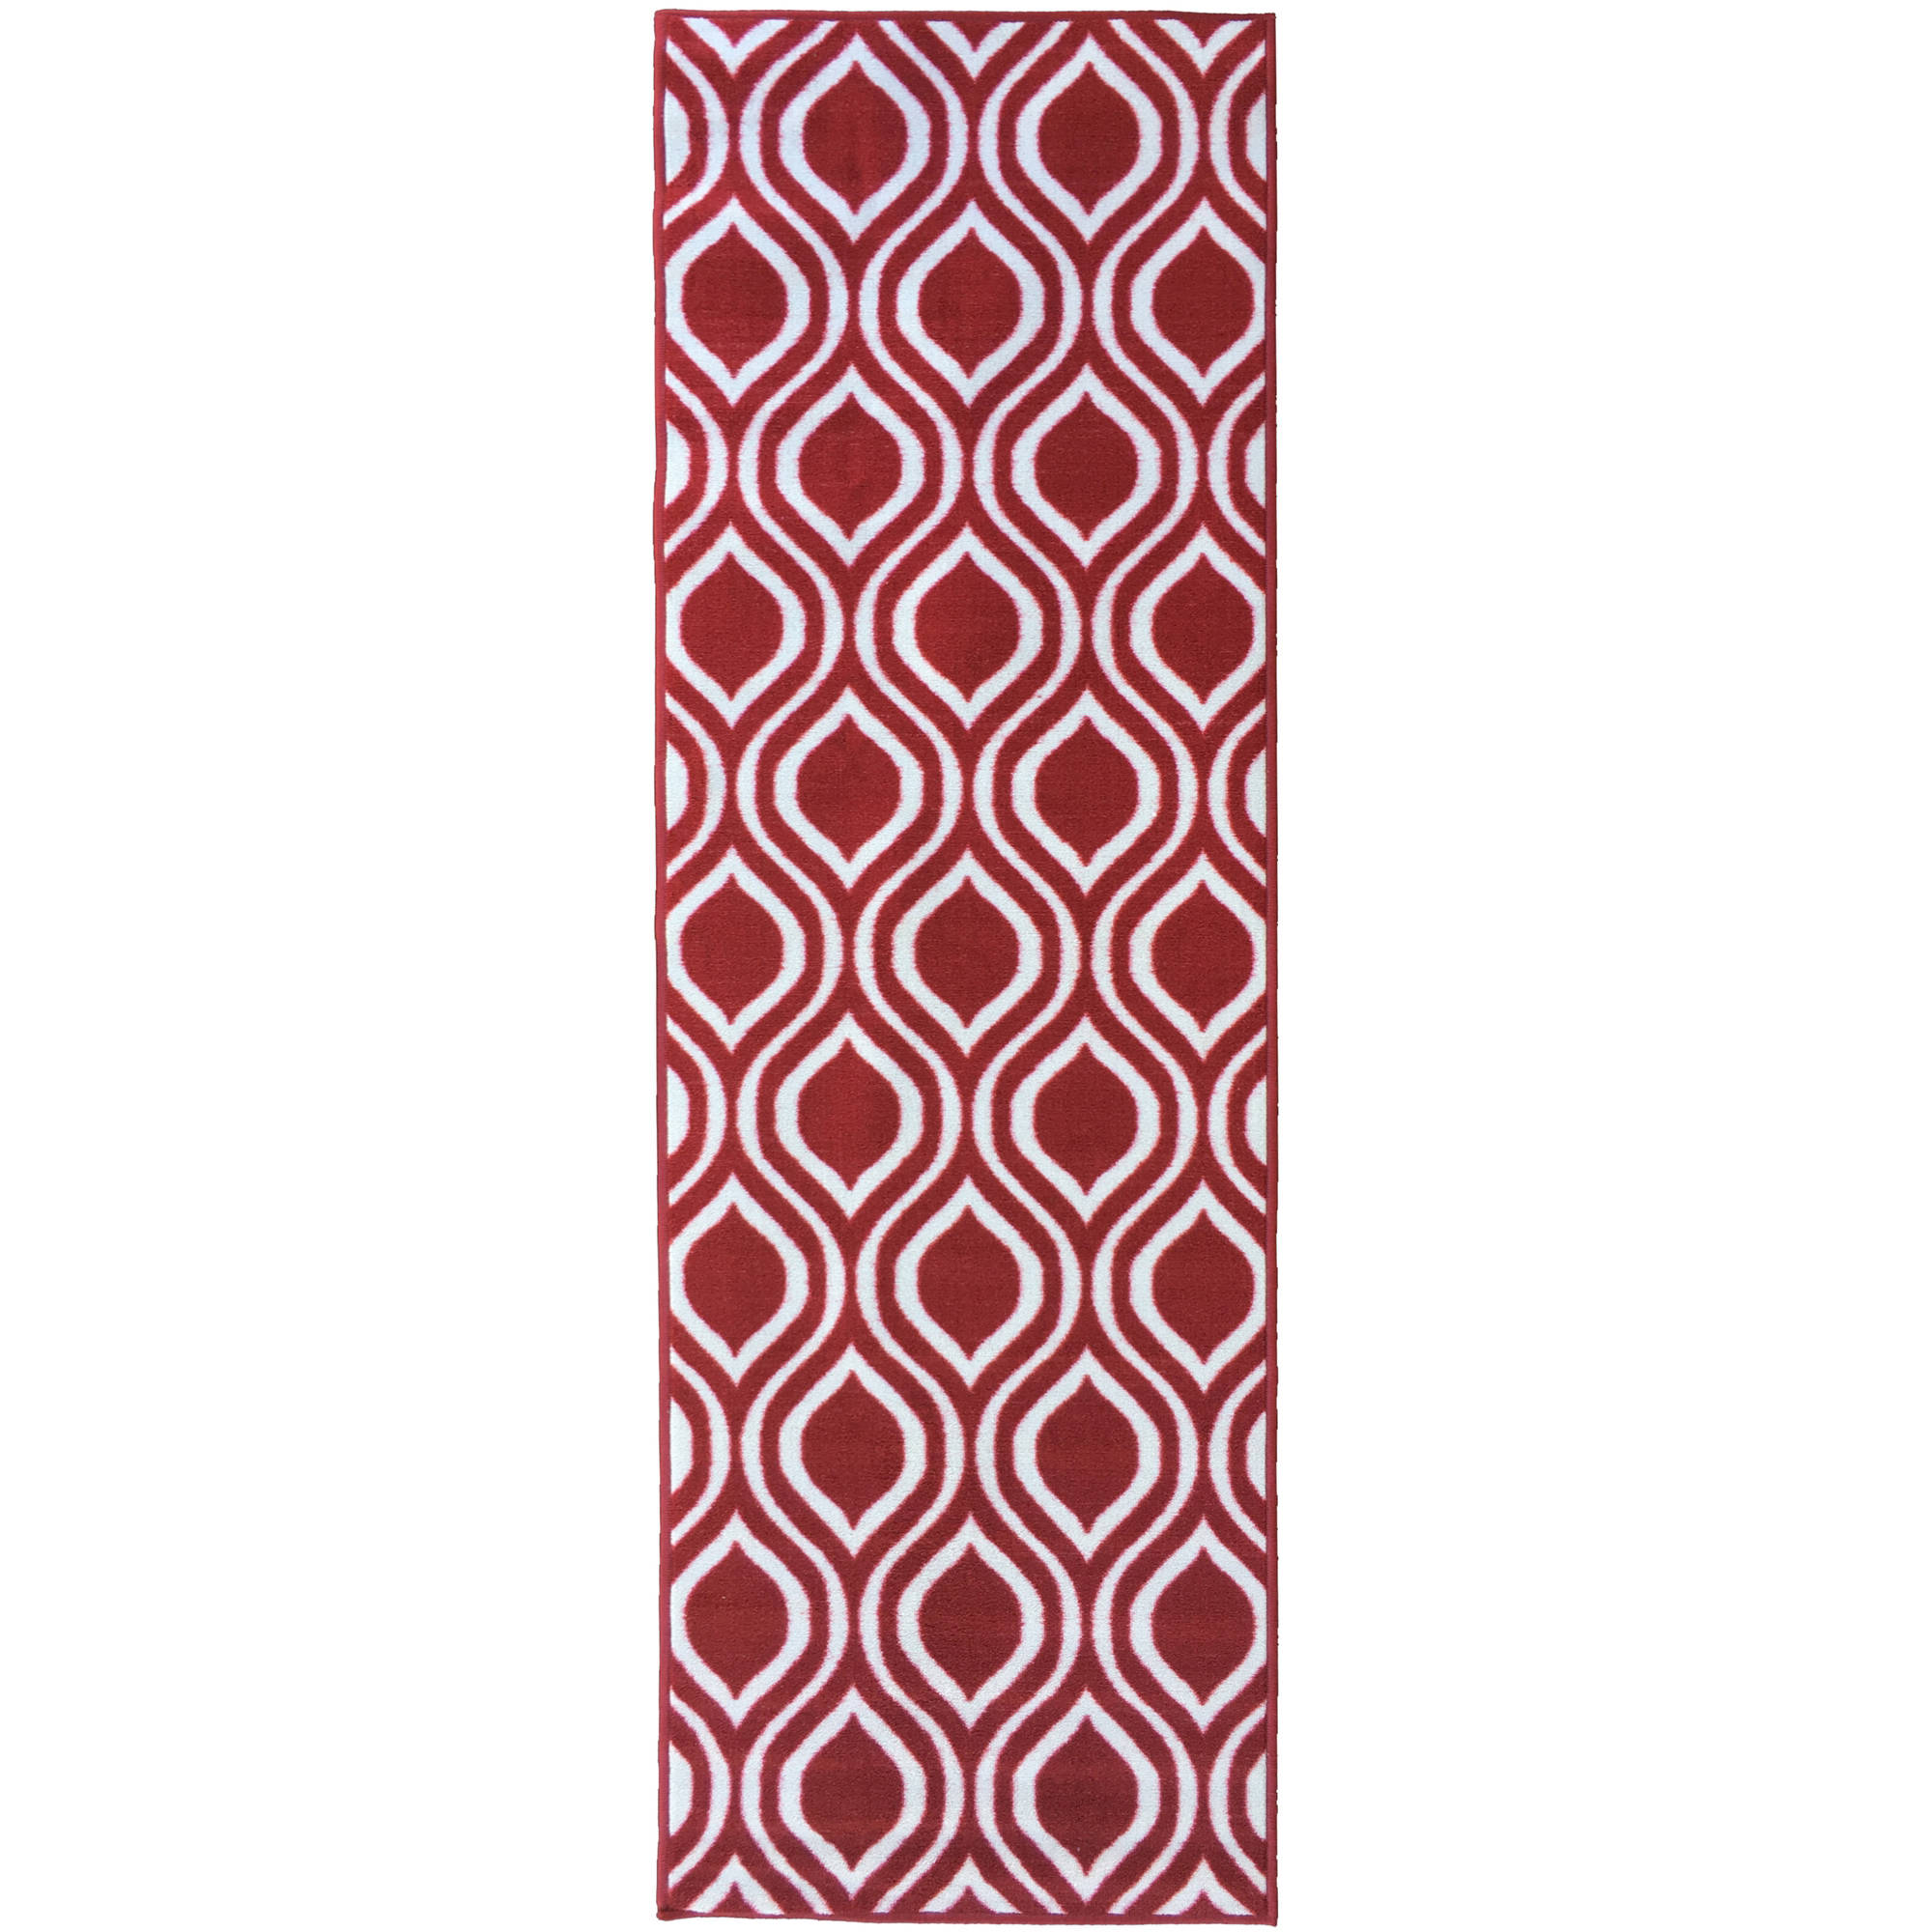 Berrnour Home Rose Collection Red Moroccan Trellis Design Runner Rug With  Non Skid (Non